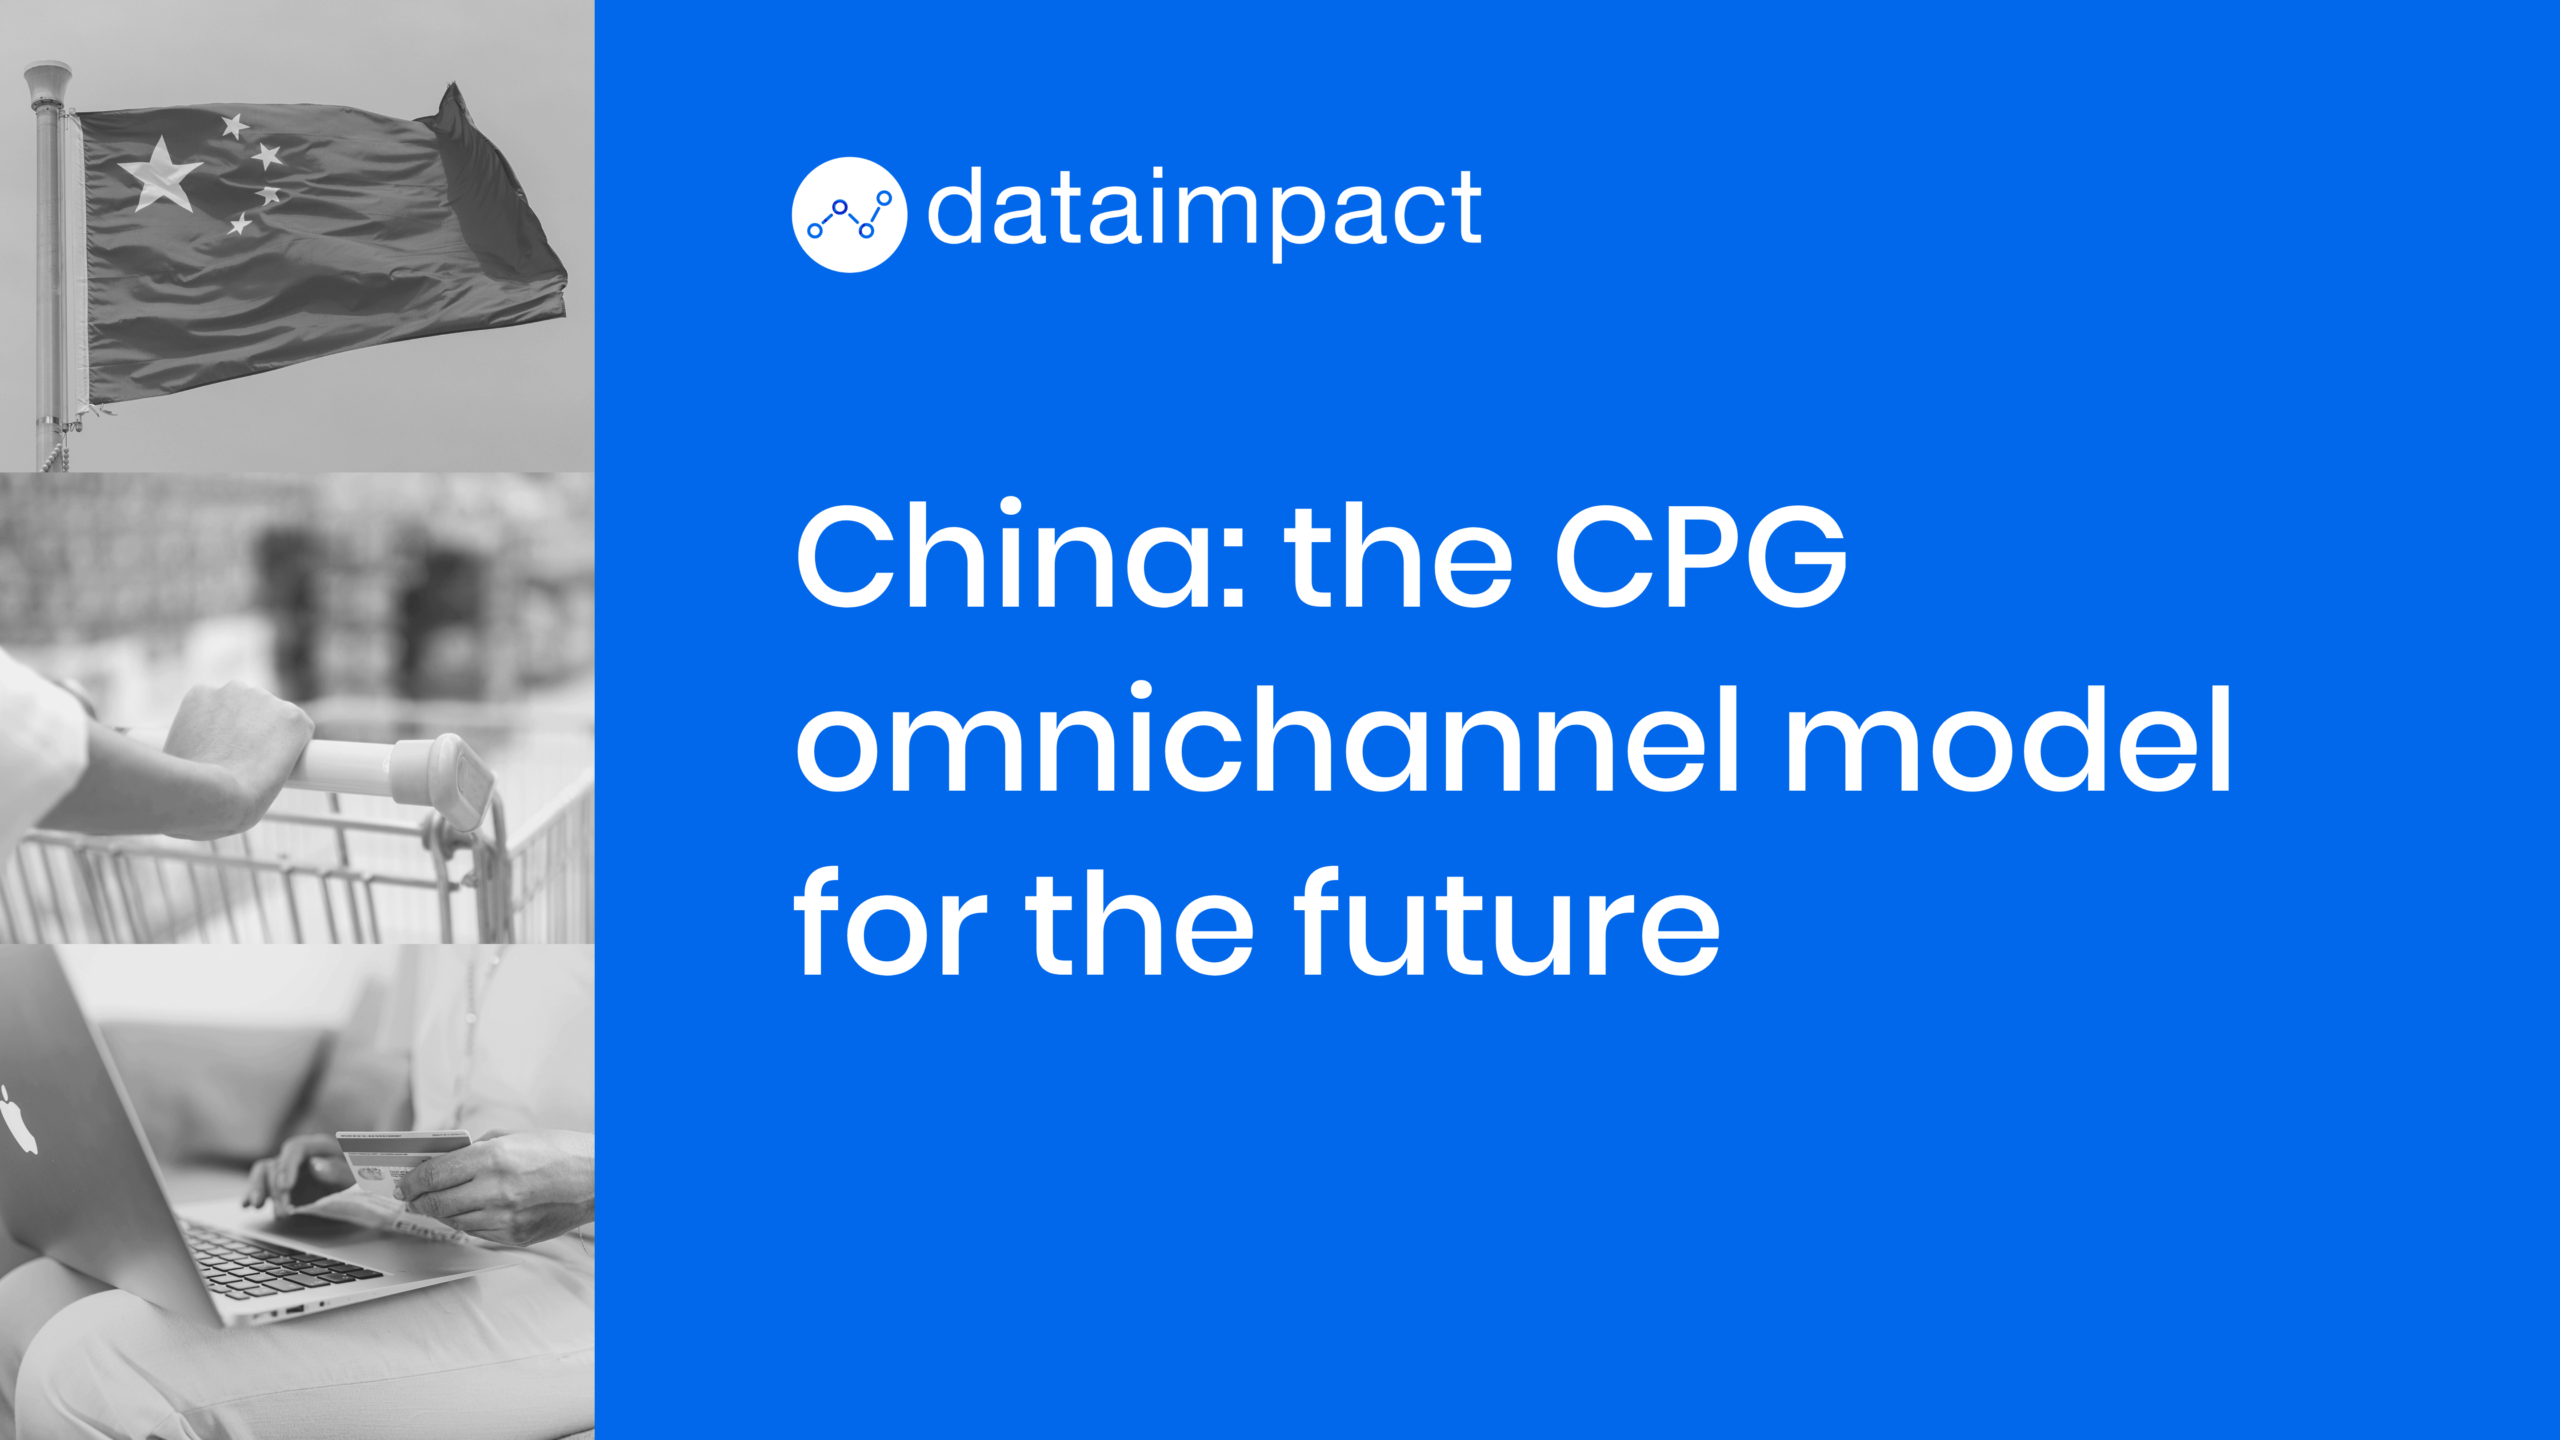 china omnichannel model CPG